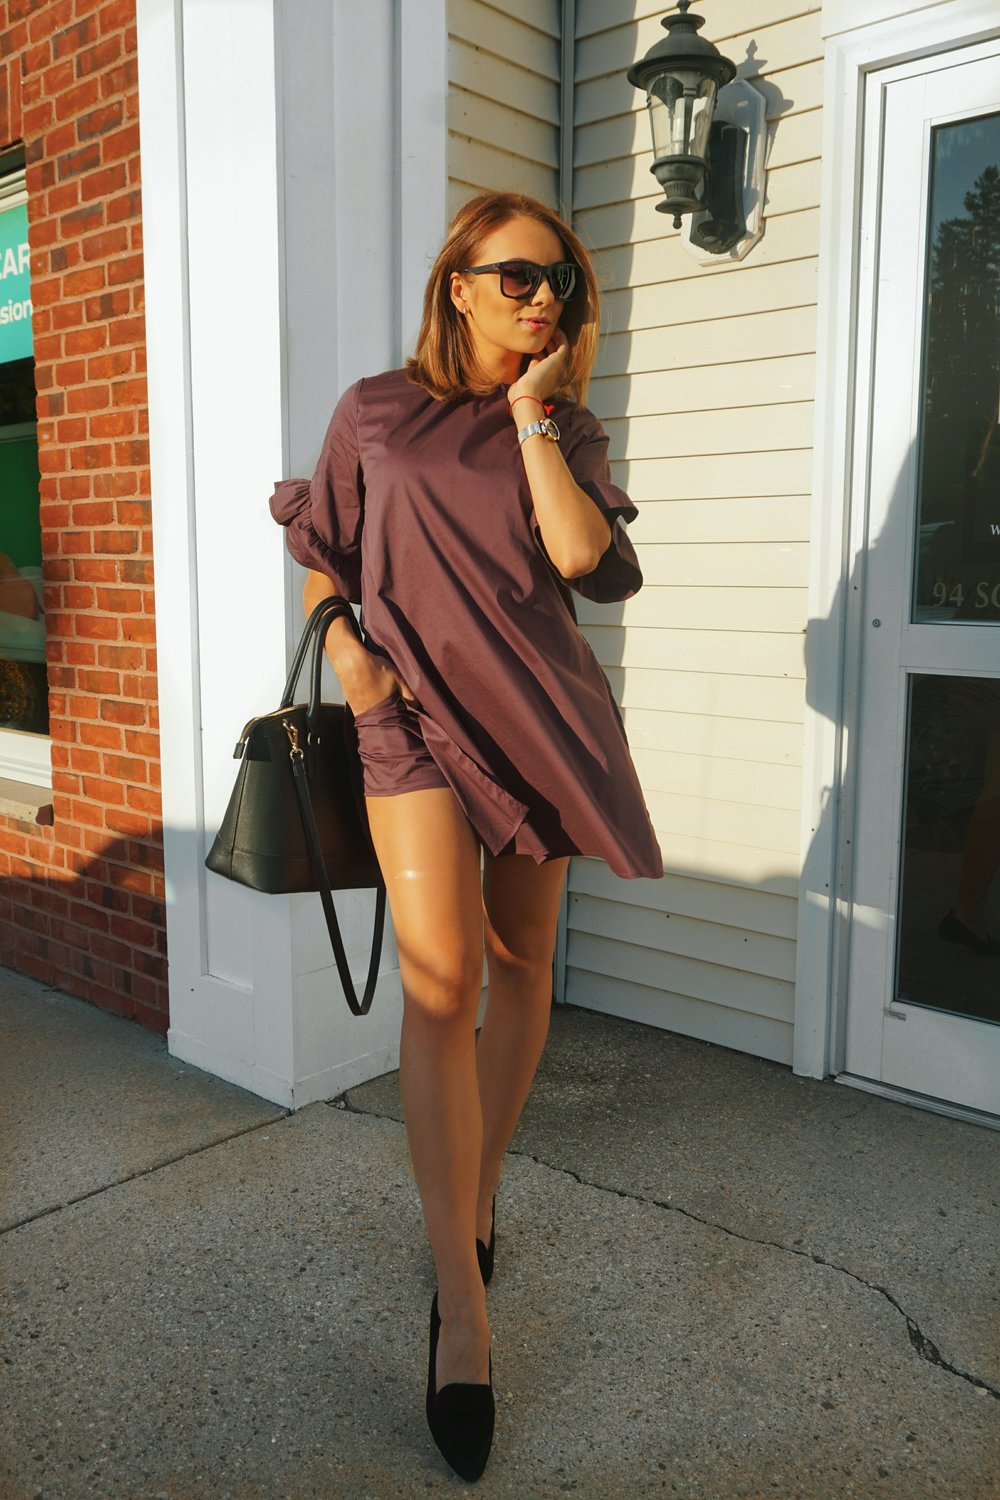 A fashion blogger wearing a plum romper dress.